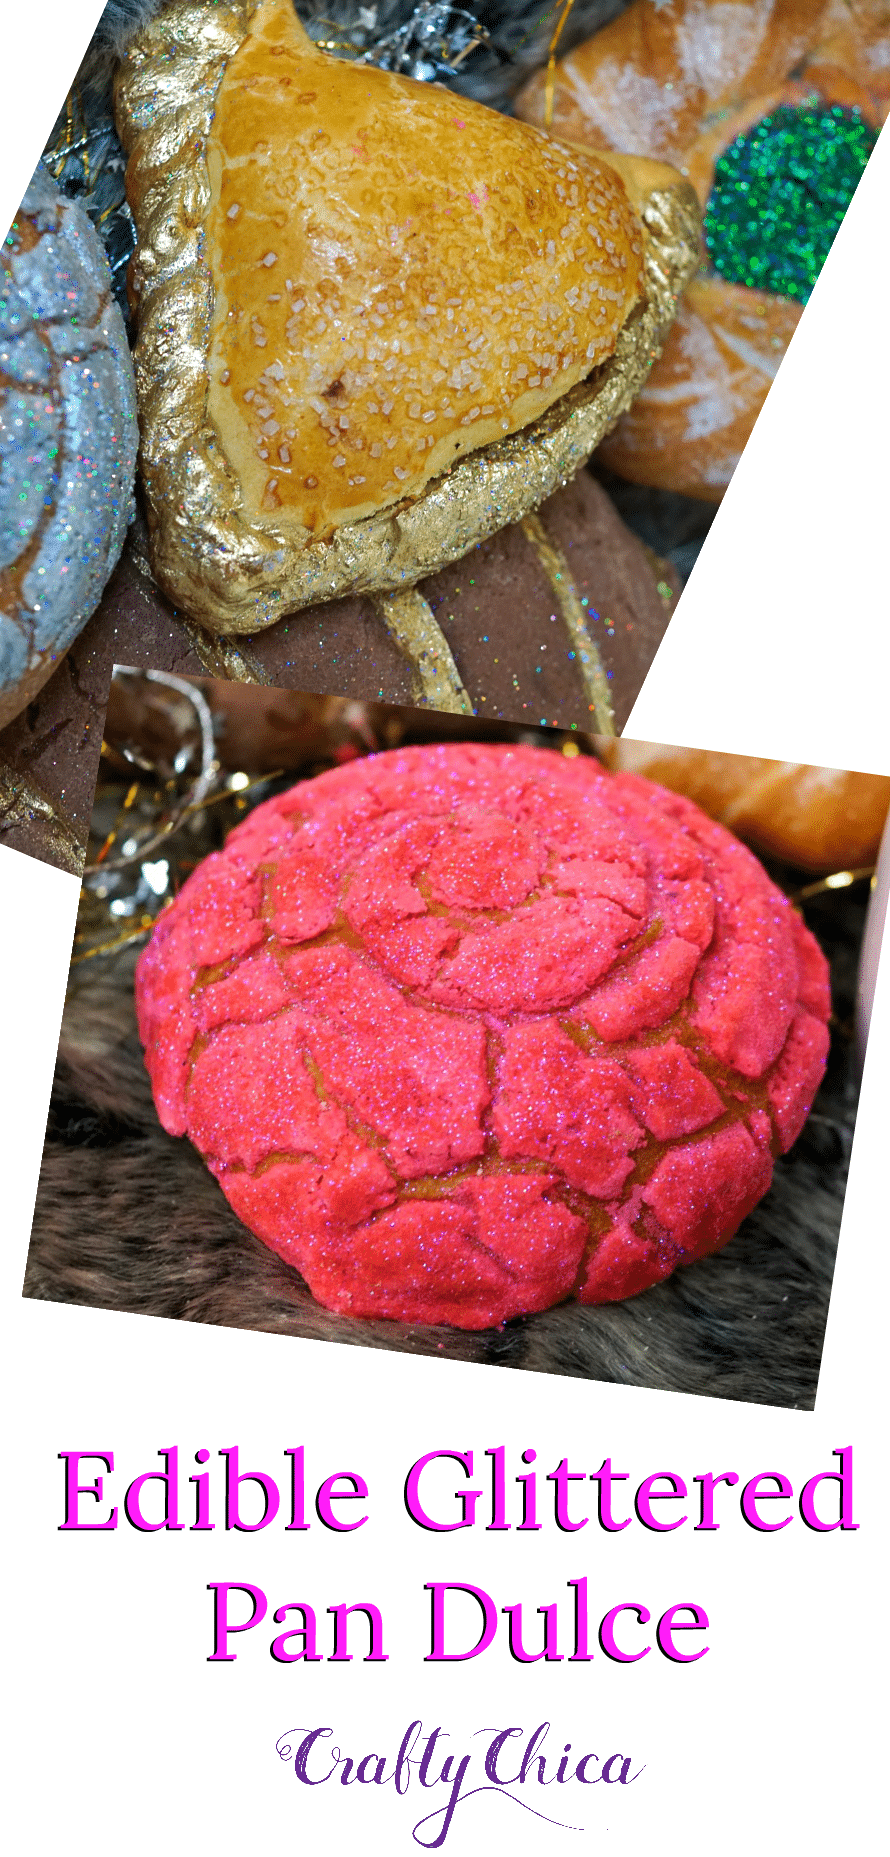 Edible glittered pan dulce and conchas